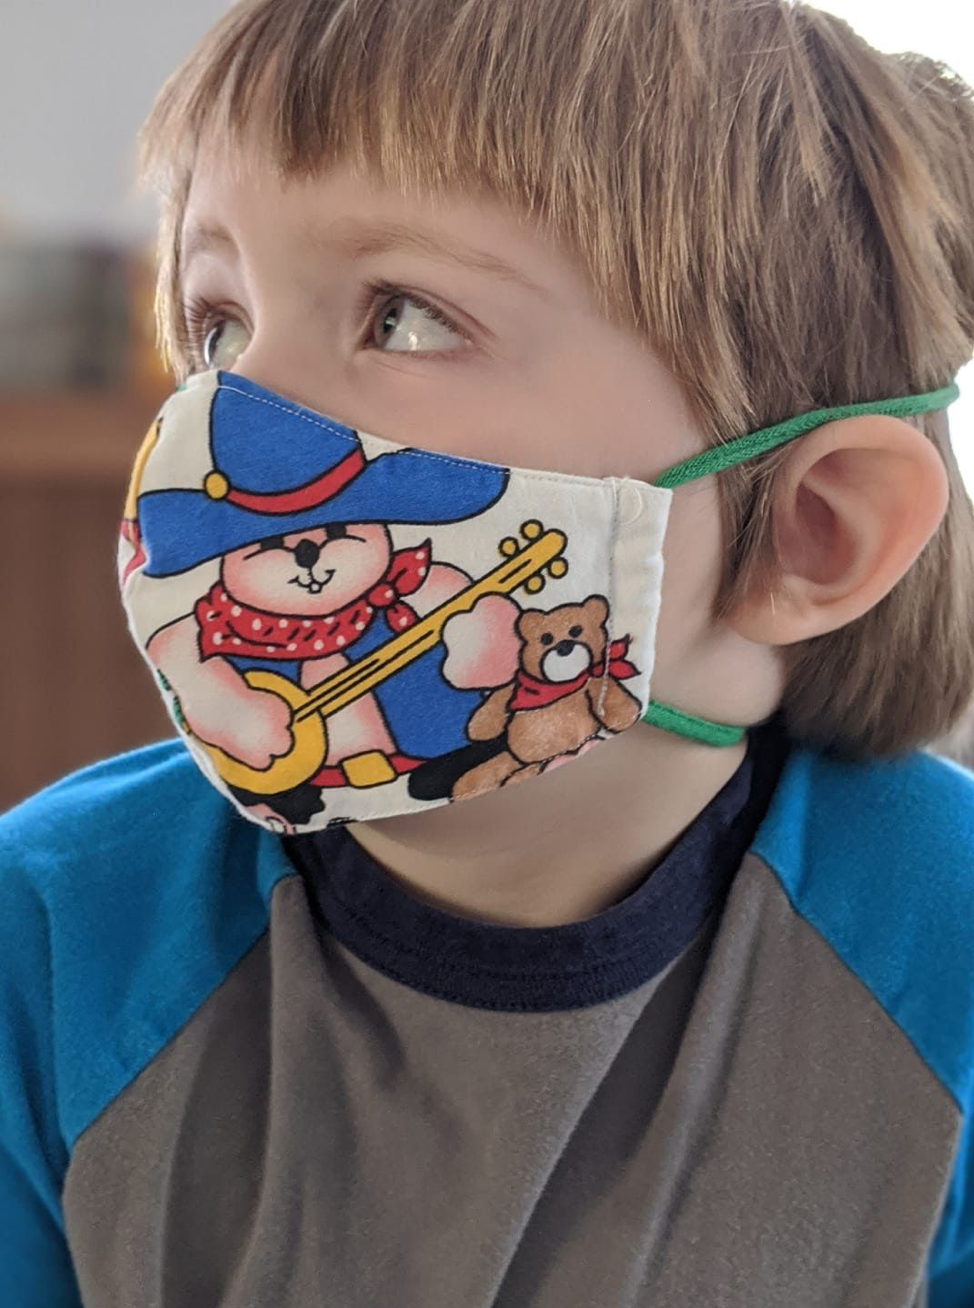 Masks for Children During the COVID-19 Pandemic